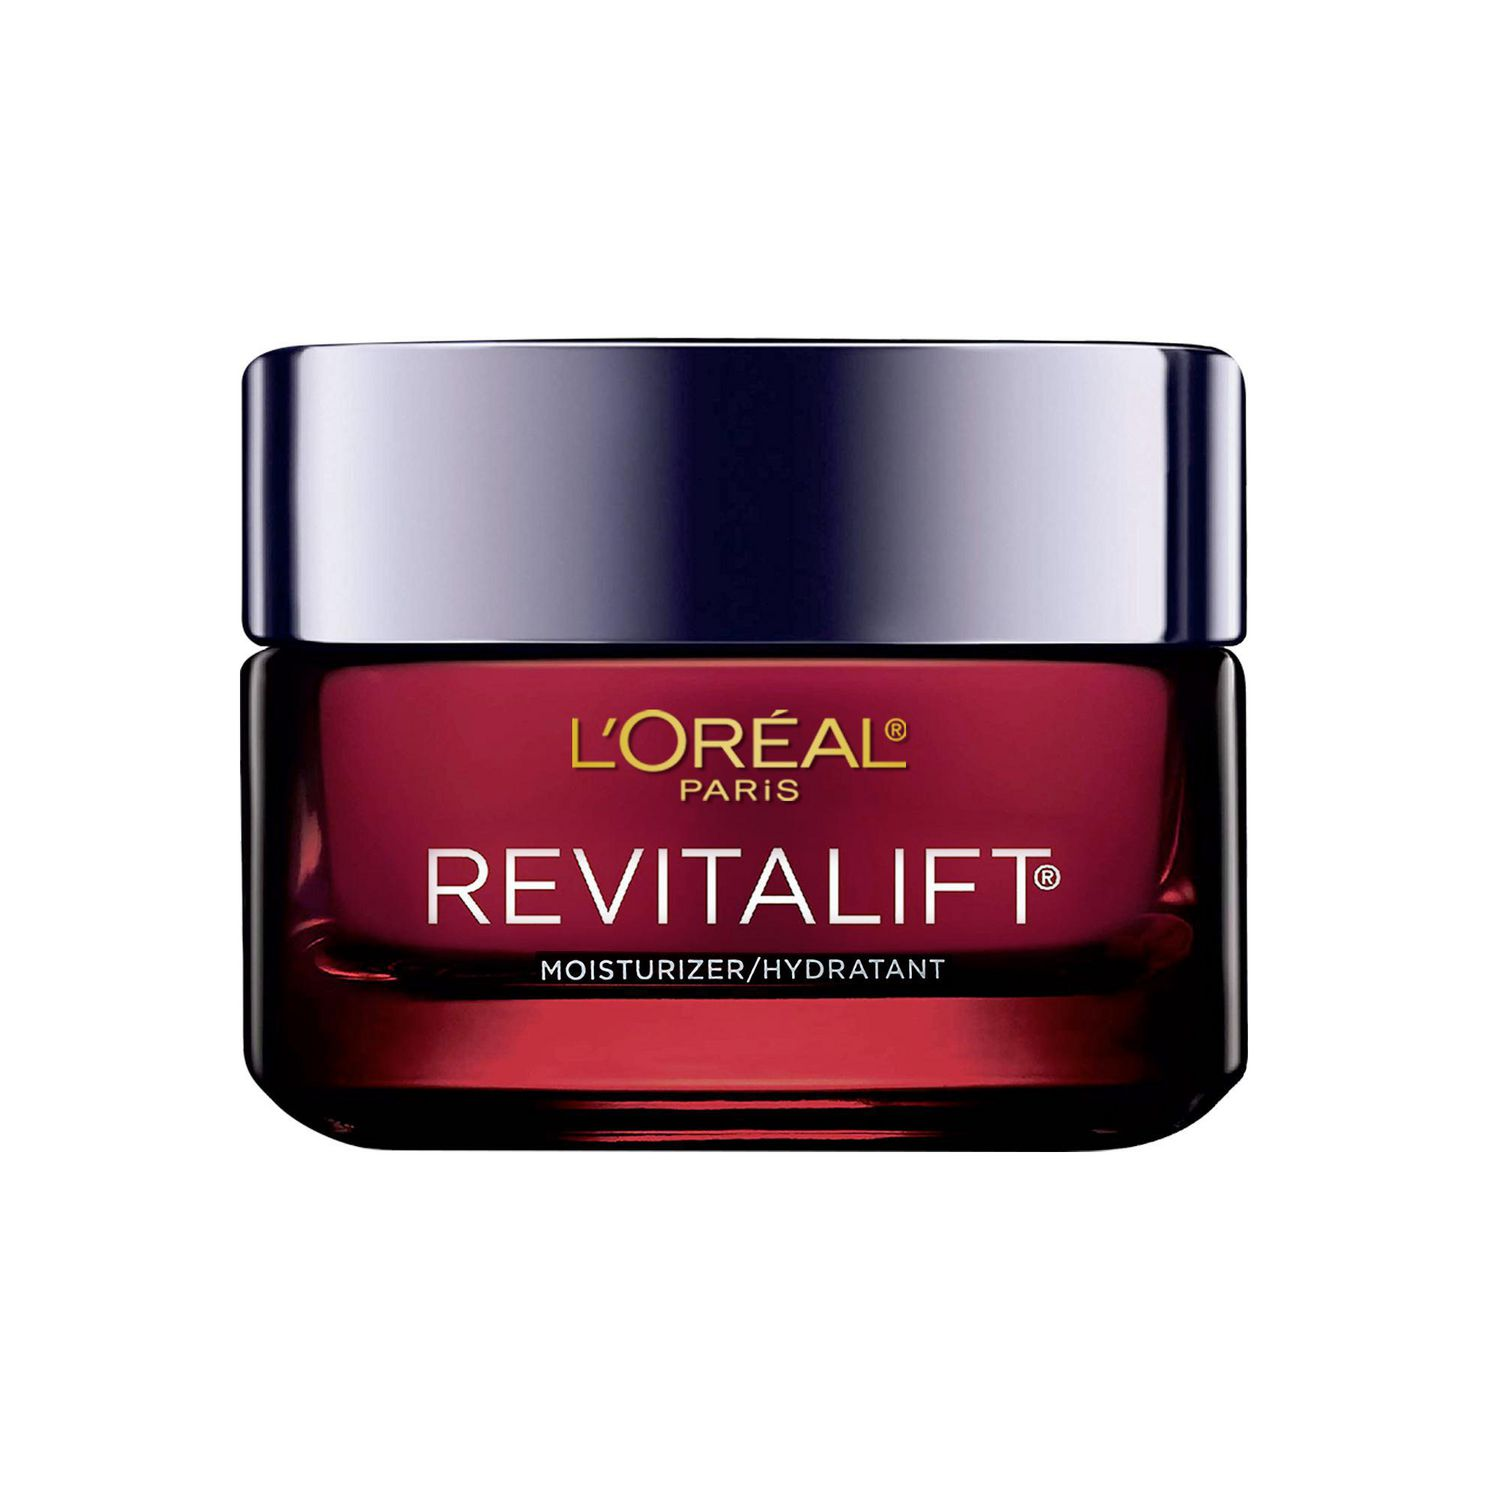 Revitalift Moisturizer by L'Oreal, the best pro-retinol face moisturizer, available worldwide.